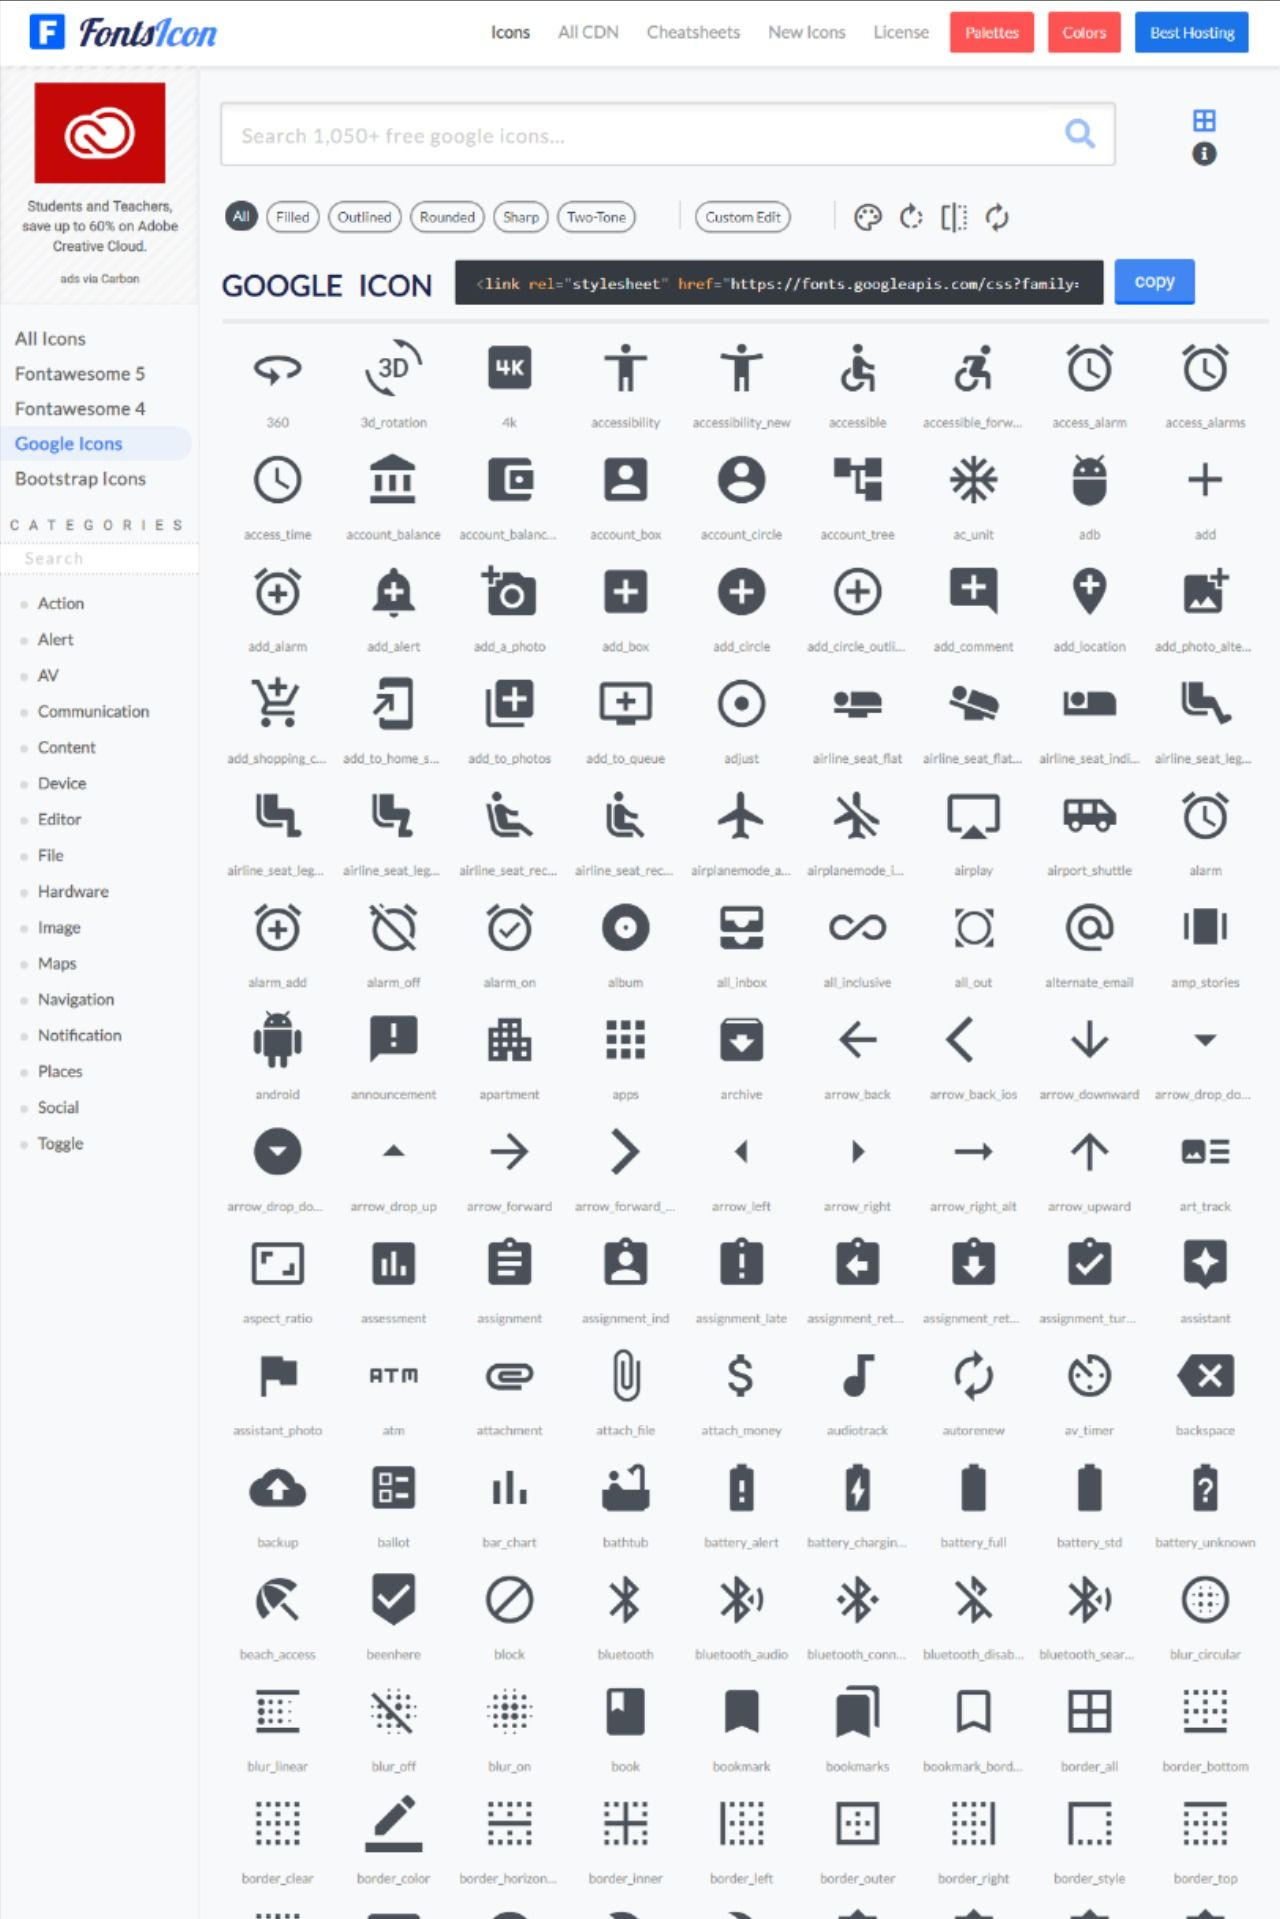 use material icons with different theme (filled, outlined